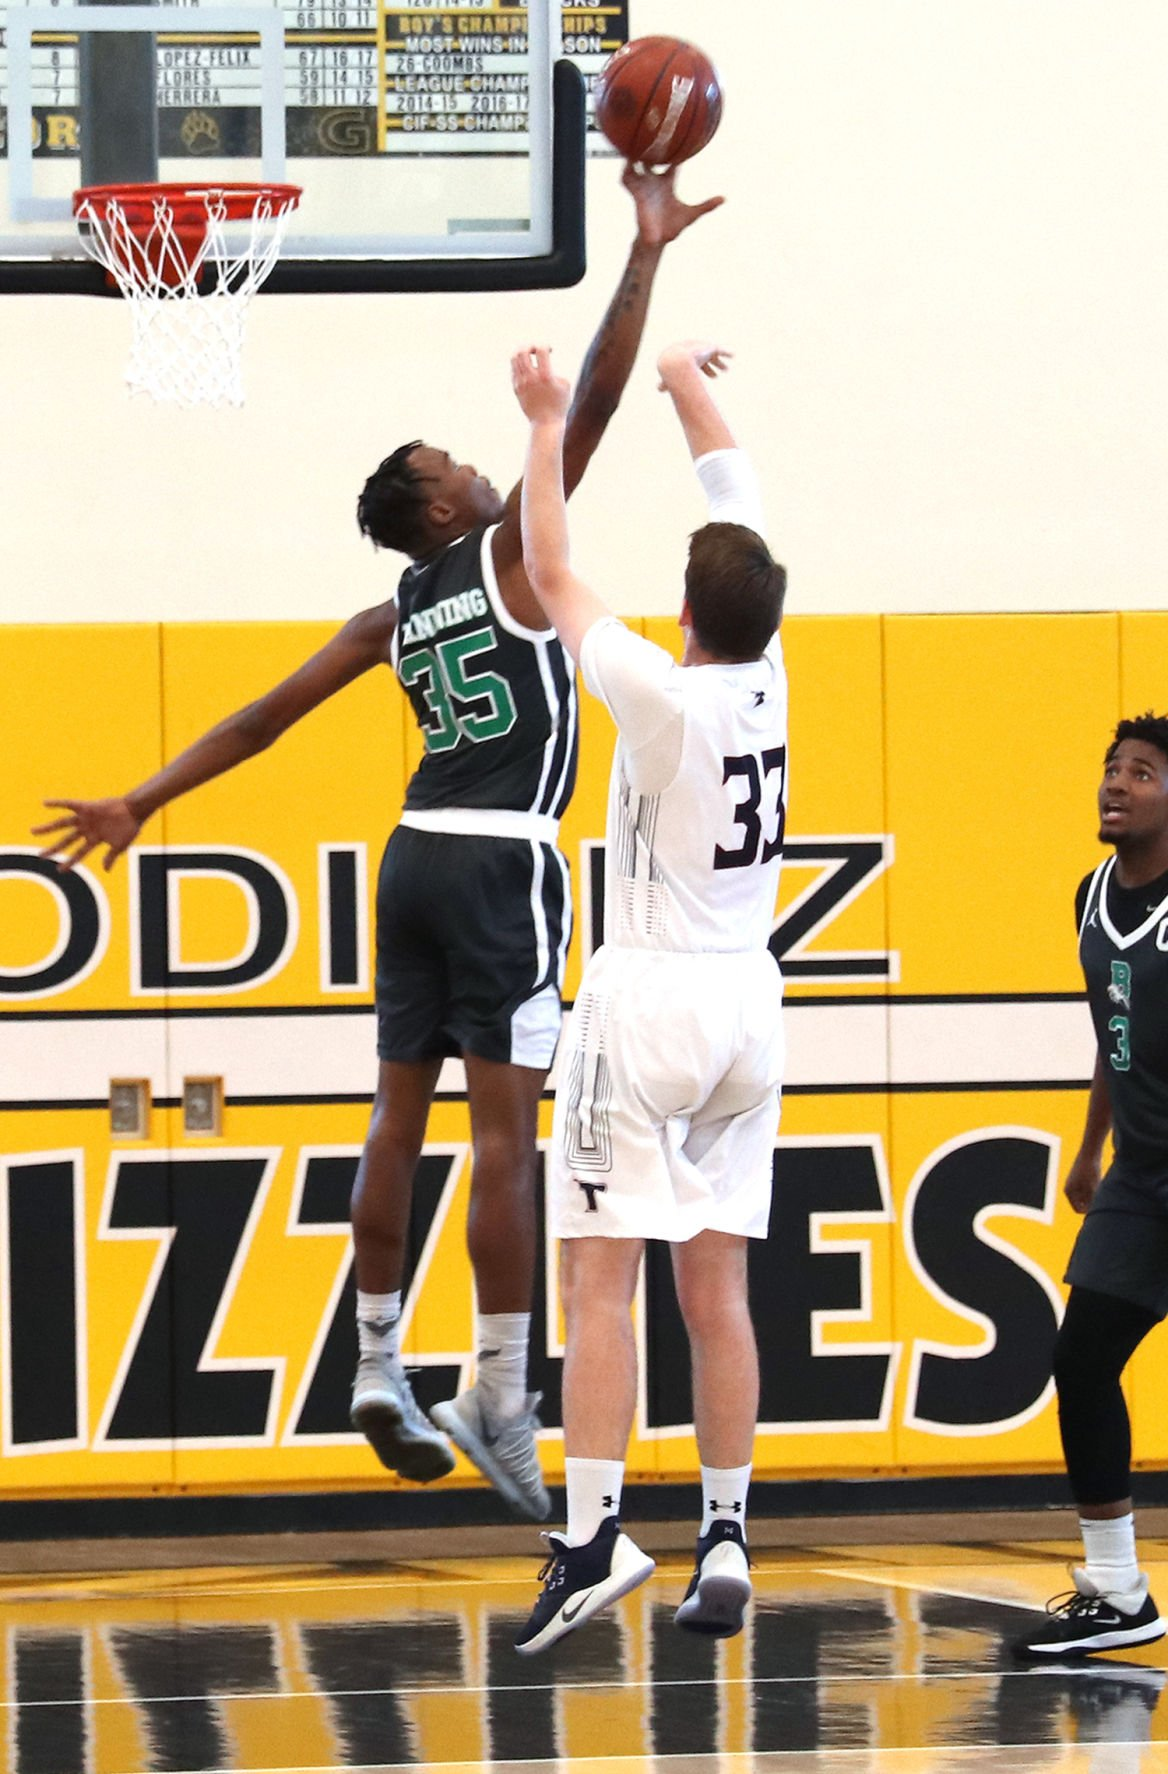 Bronco Keon Mitchell was full tilt on blocking, stealing and rebounding during the CIF title game.